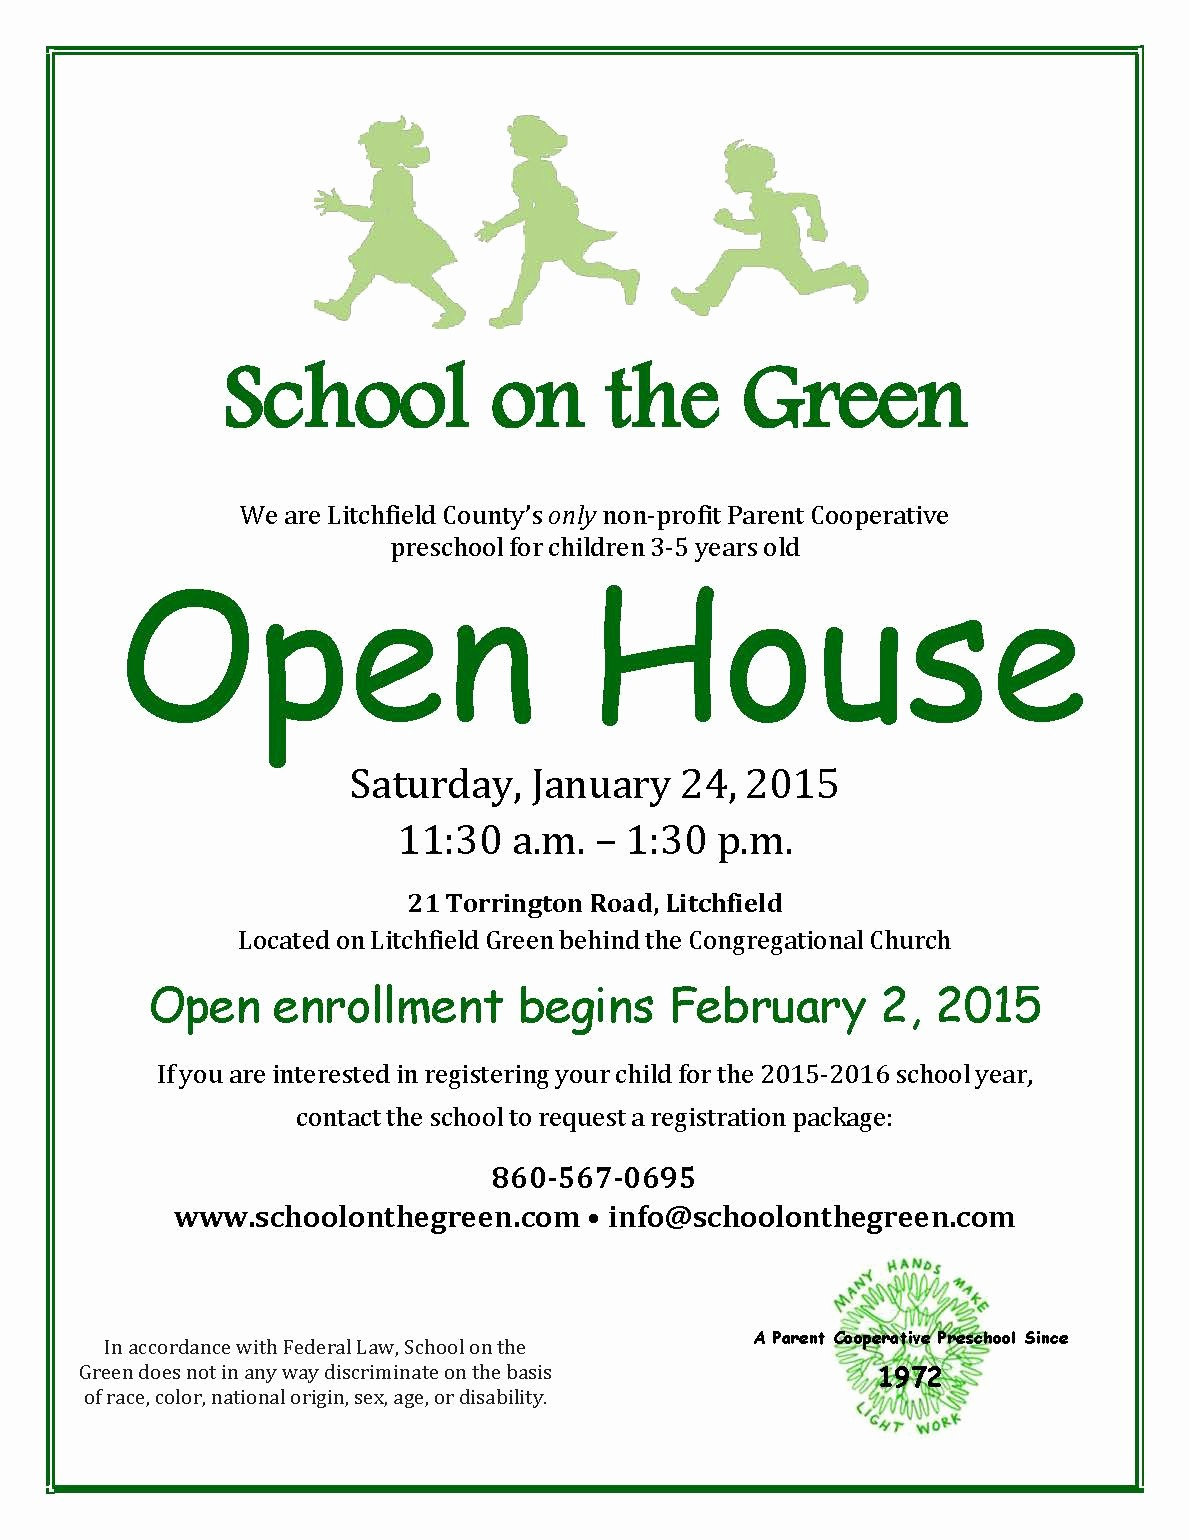 Open House Flyer for School New School the Green